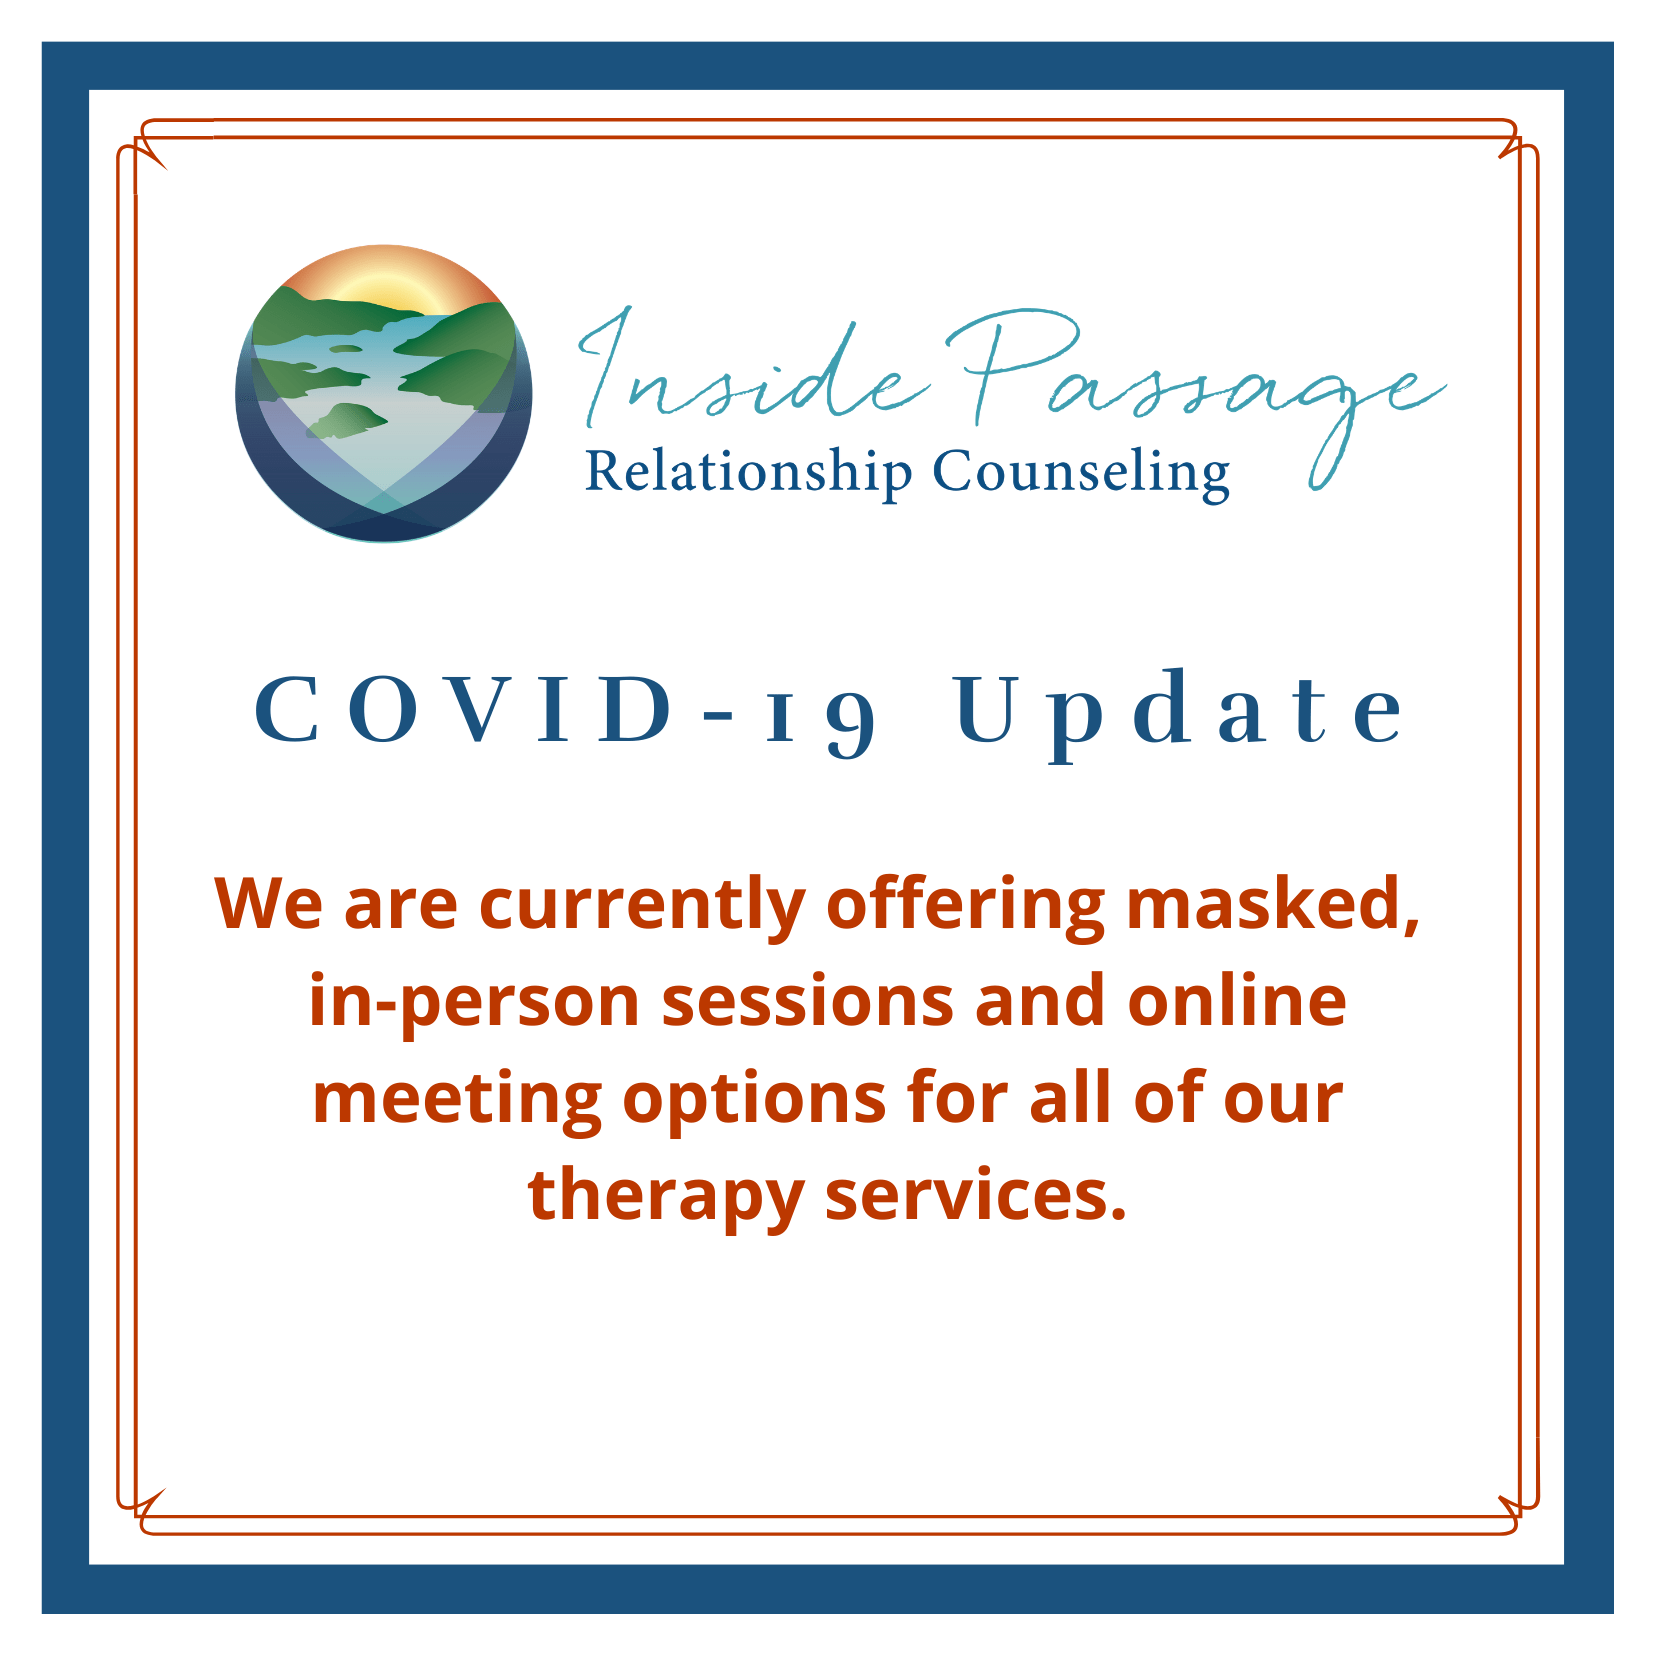 covid-19 update for inside passage counseling